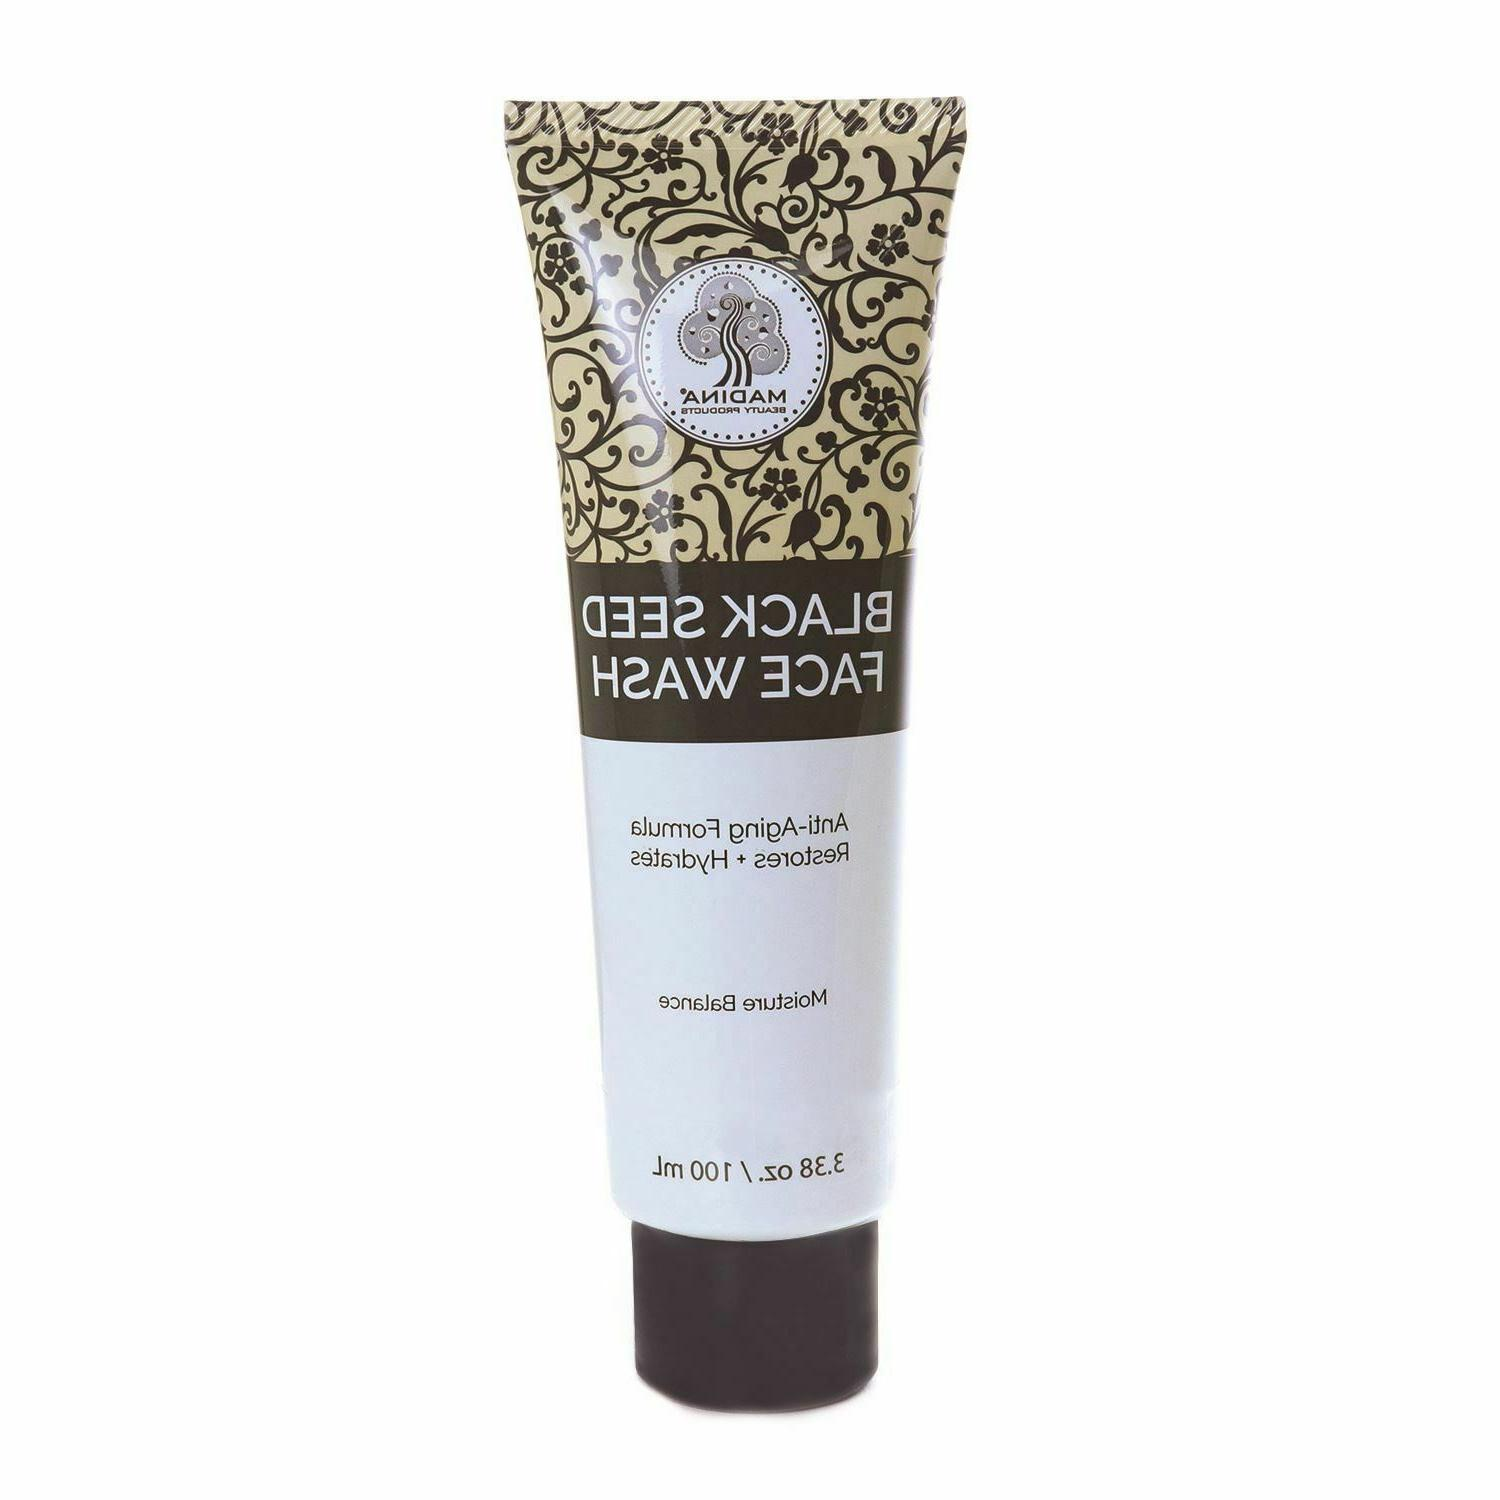 100% Natural Black Seed Face Wash - 3.38 oz